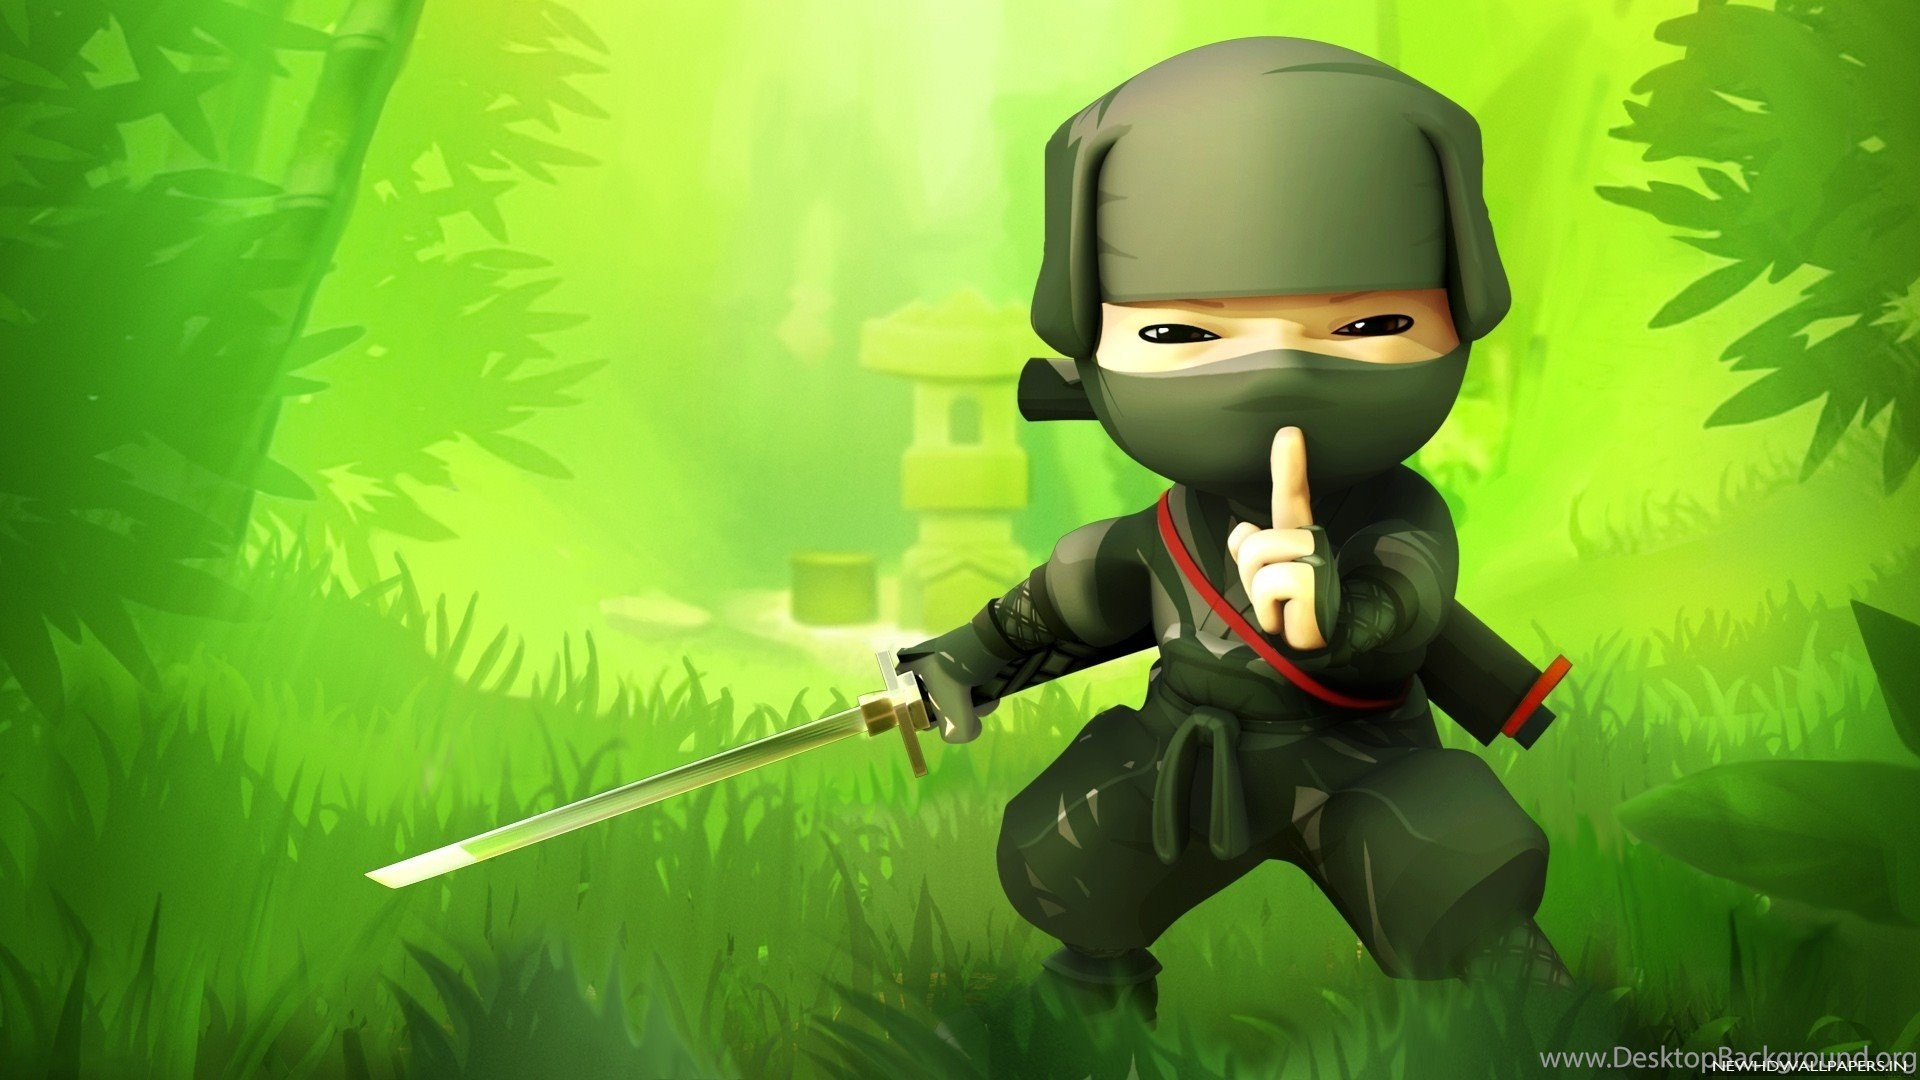 hd hd animation and cartoon wallpapers desktop background